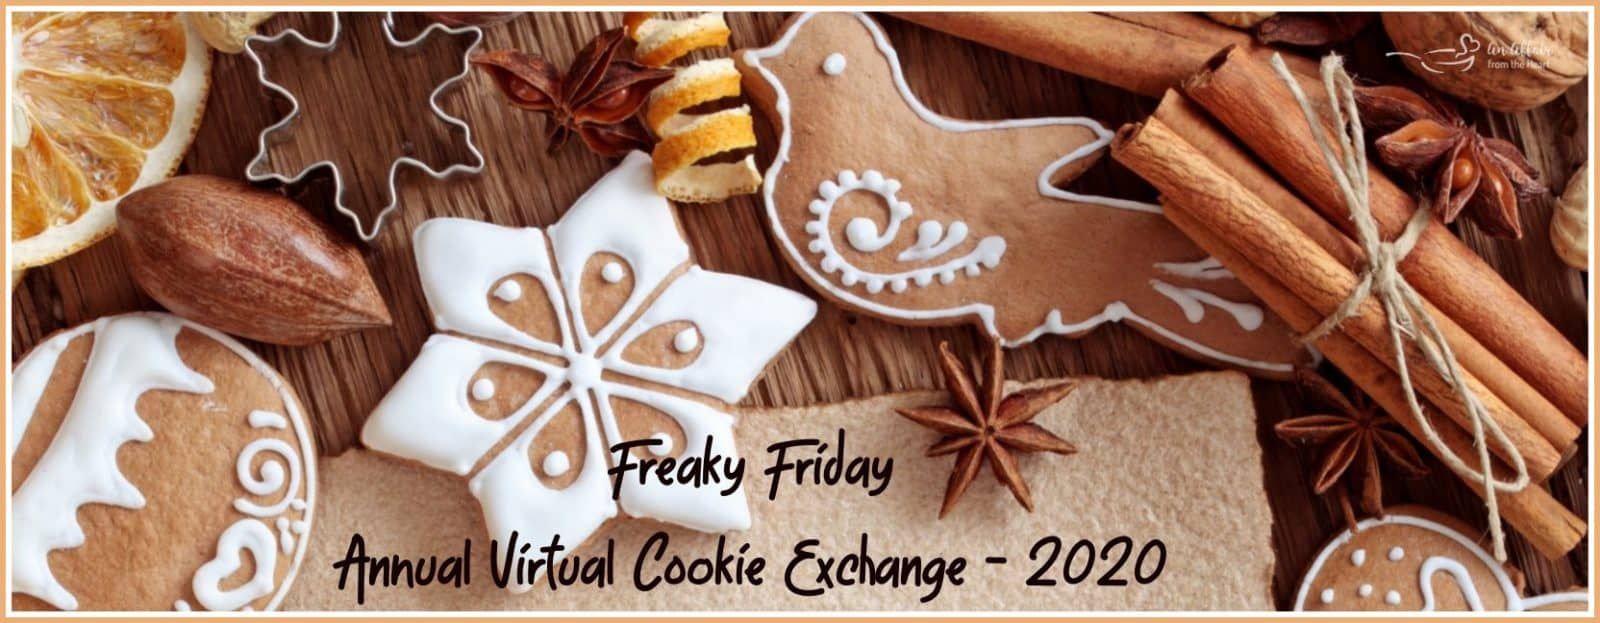 Freaky Friday Virtual Cookie Exchange banner for 2020, Various iced and decorated cookies with spices.